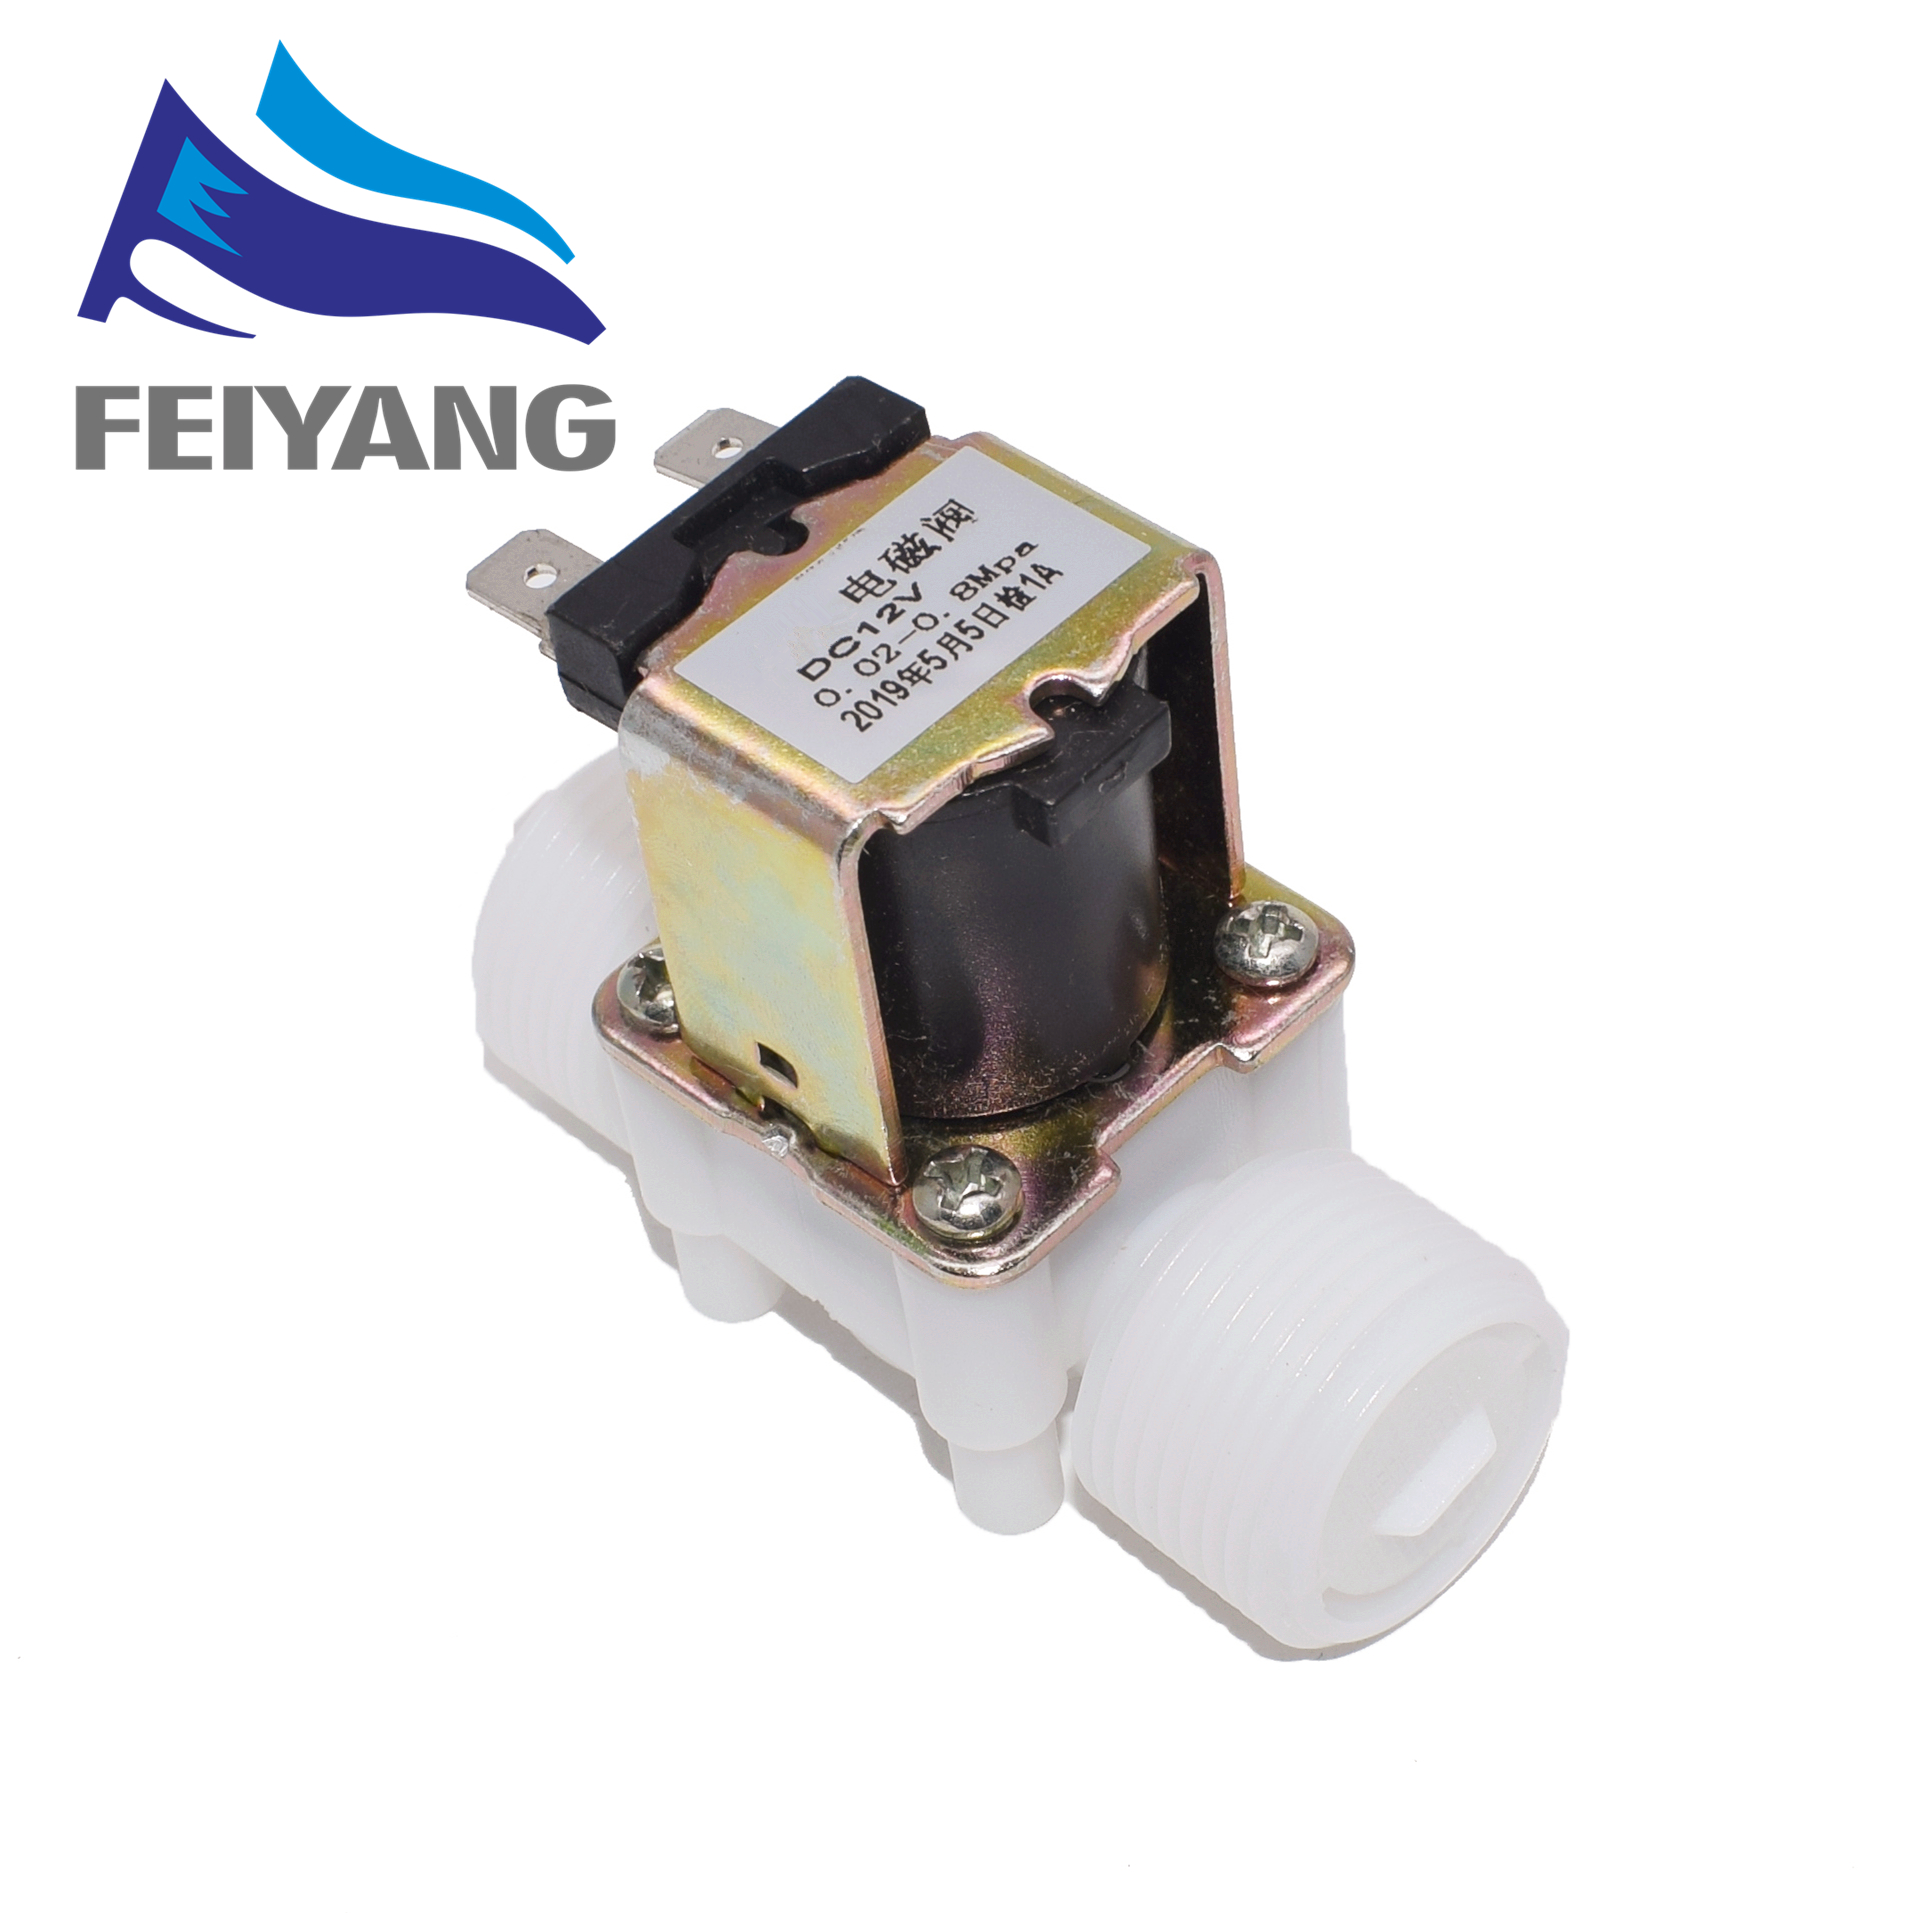 10pcs 200W DC DC Boost Converter 6 35V to 6 55V 10A Step Up Voltage Charger